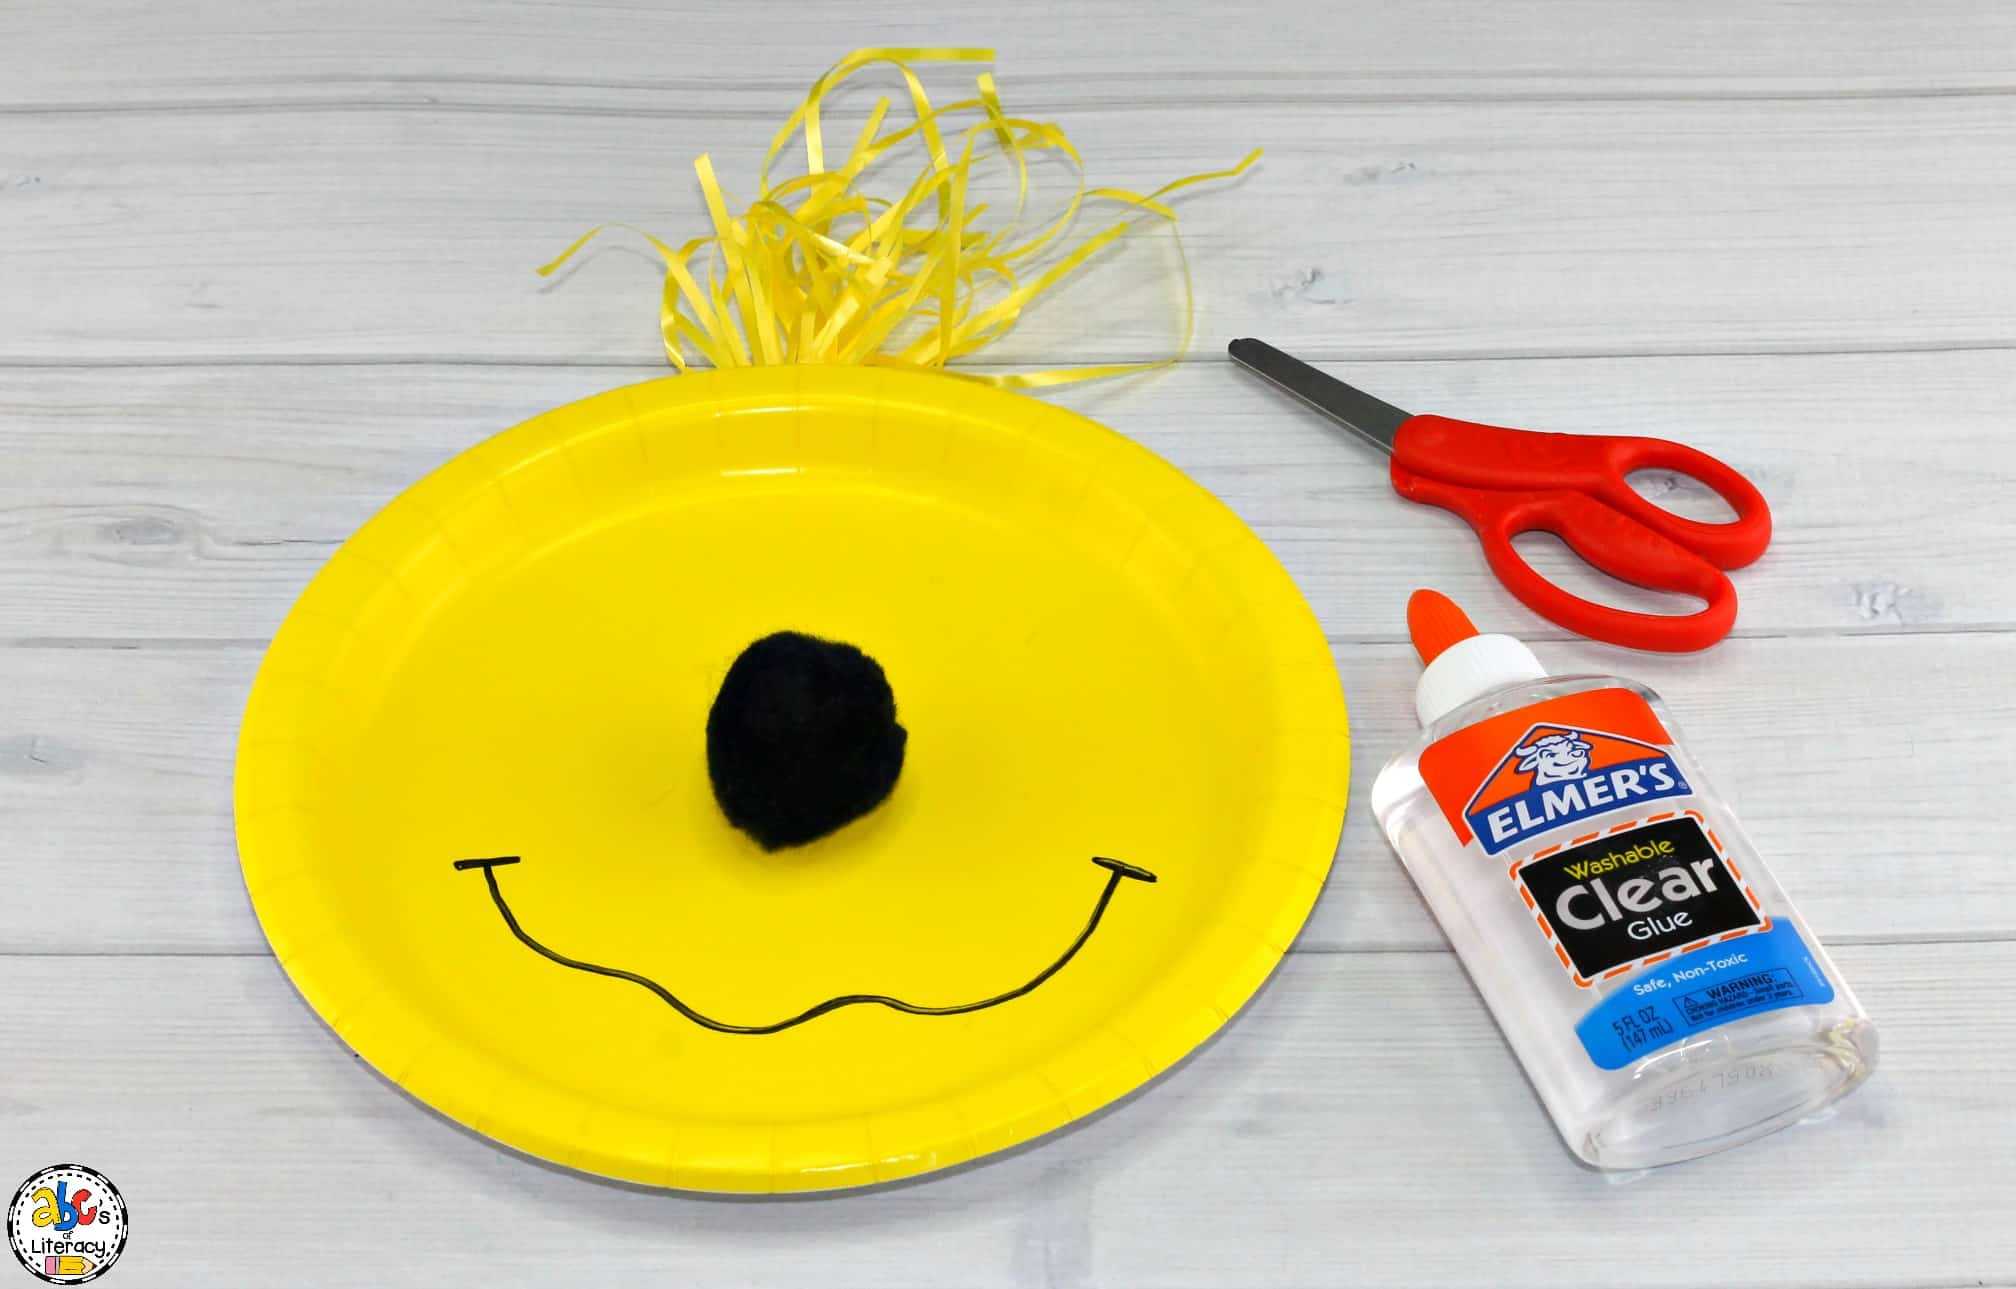 How To Make The Sleep Book Paper Plate Craft For Dr. Seuss Day